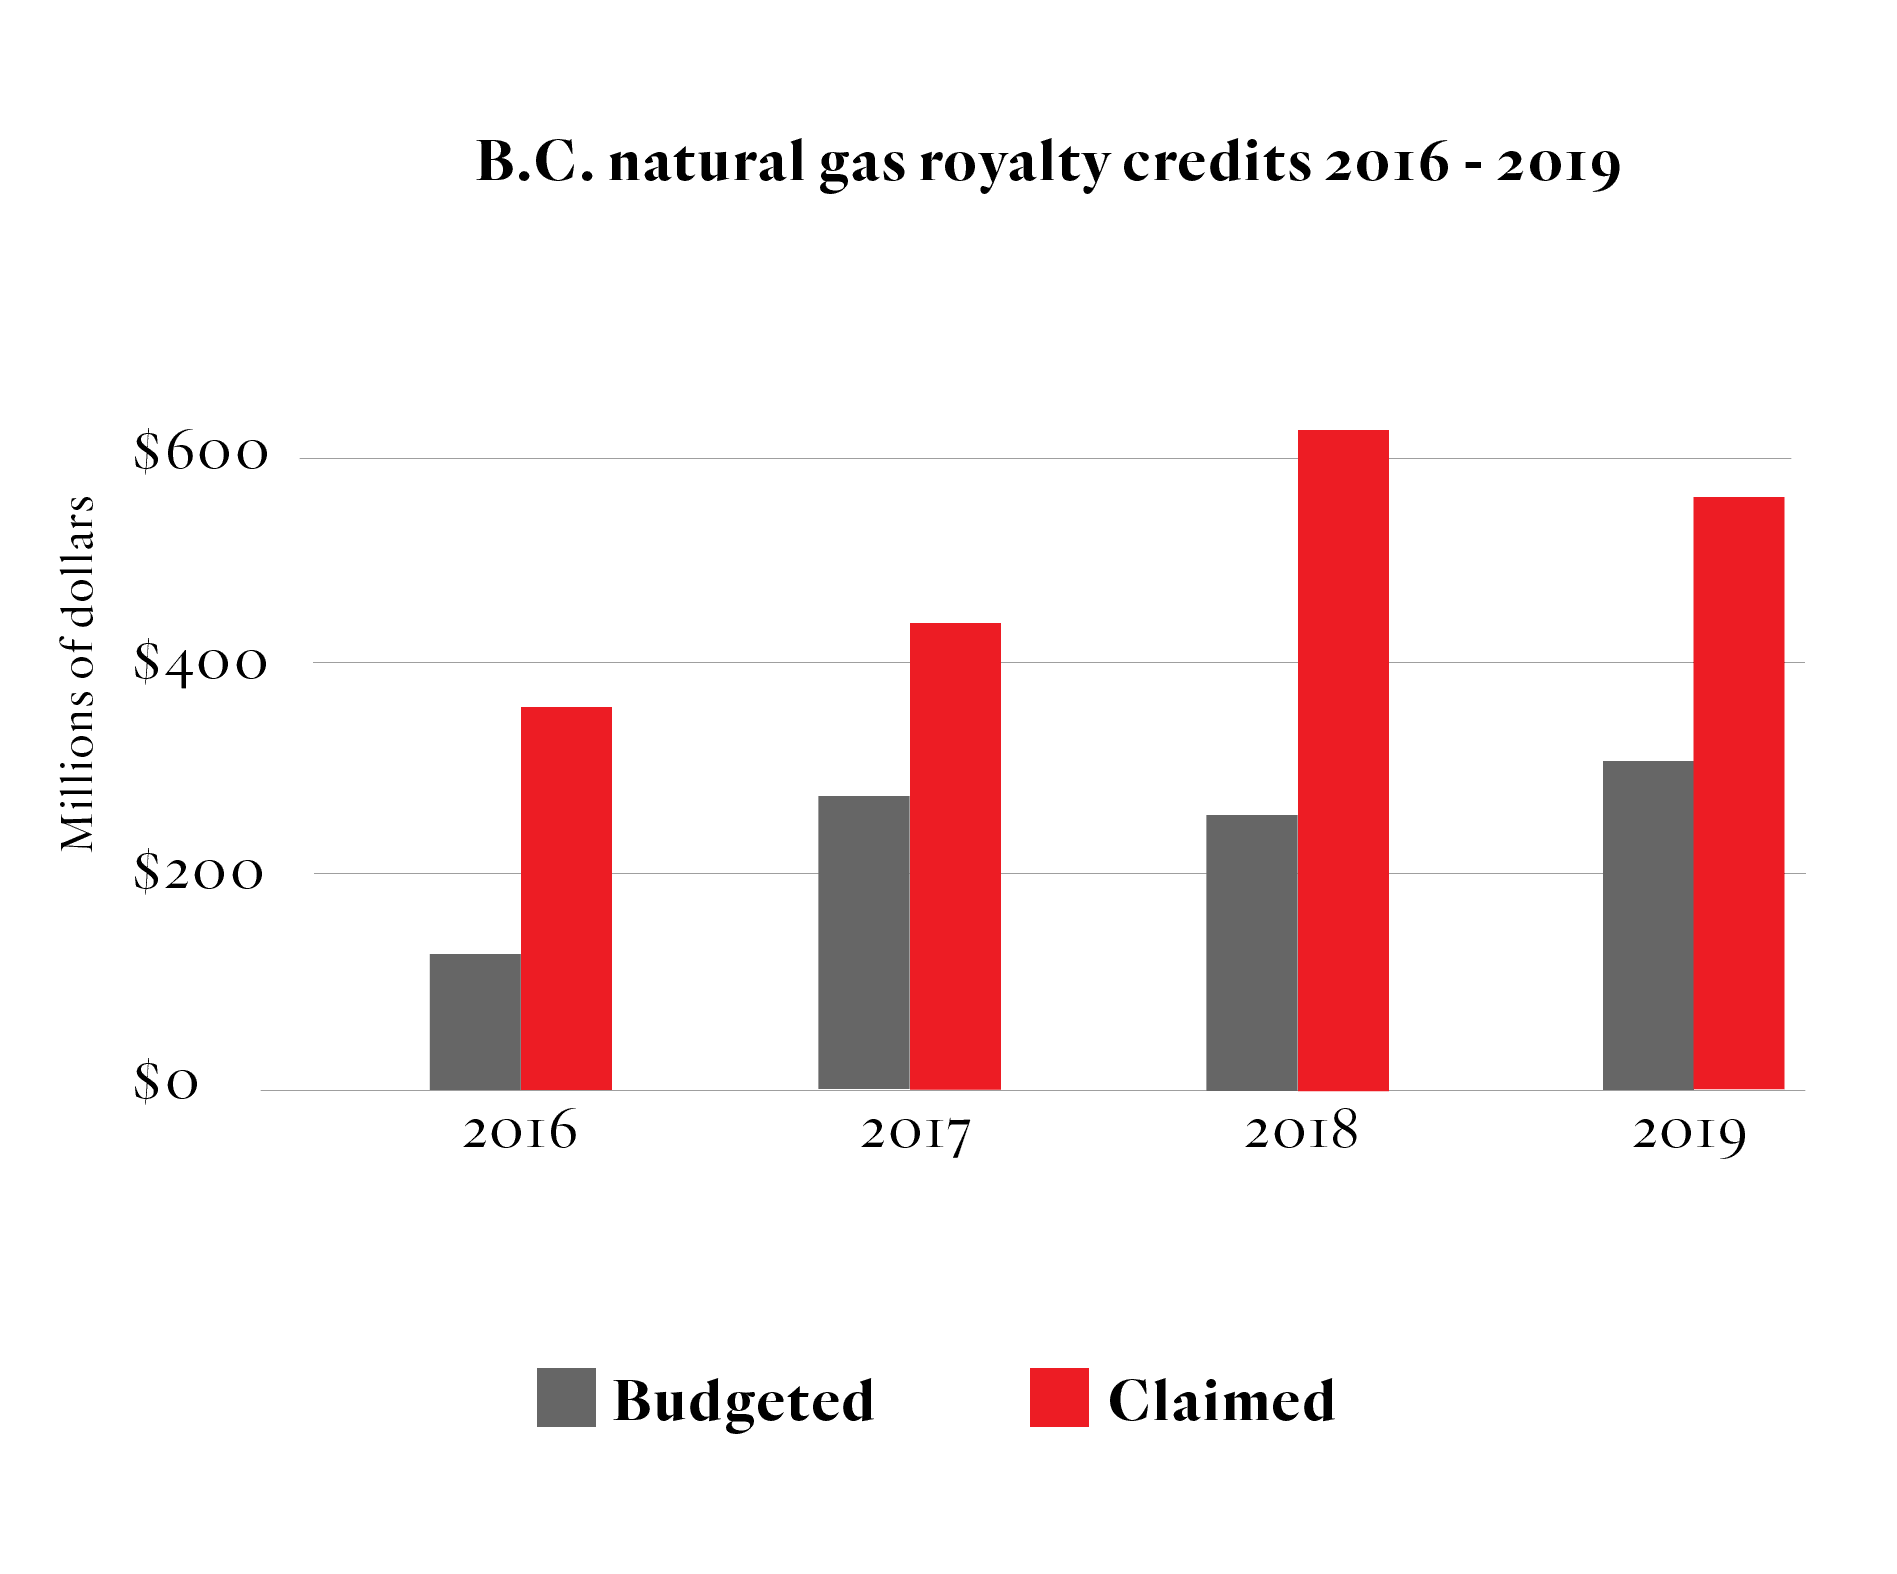 Graph showing natural gas royalties claimed in B.C. between 2016 and 2019